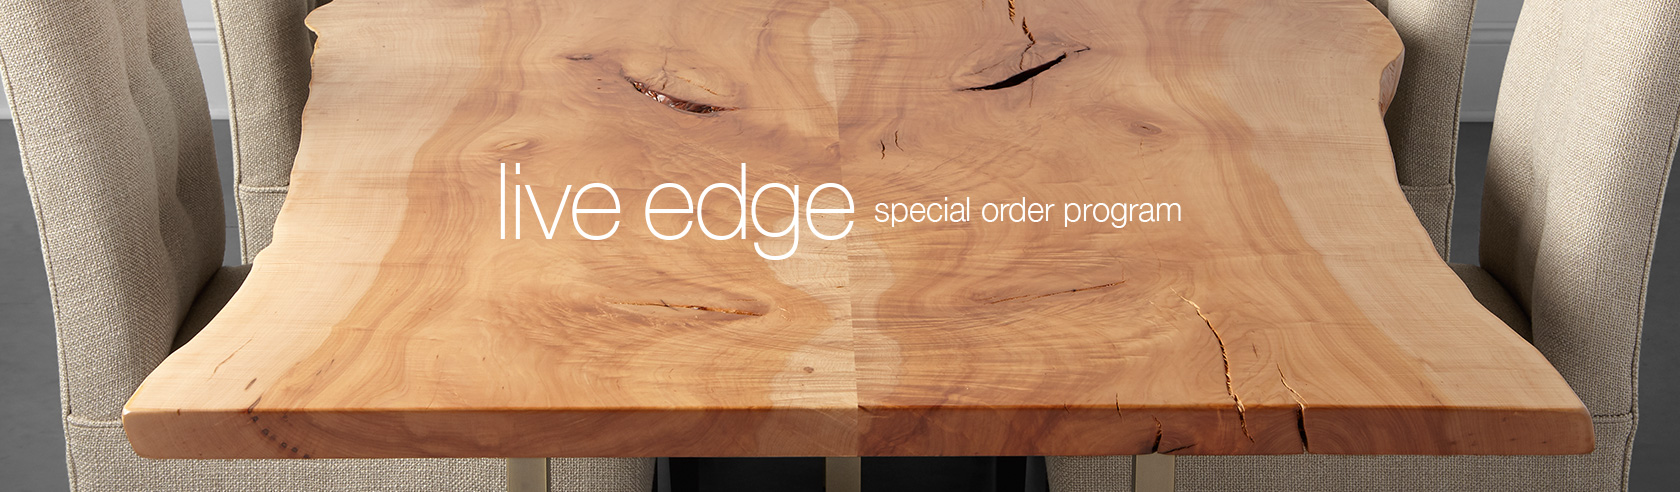 Shop Arhaus Live Edge